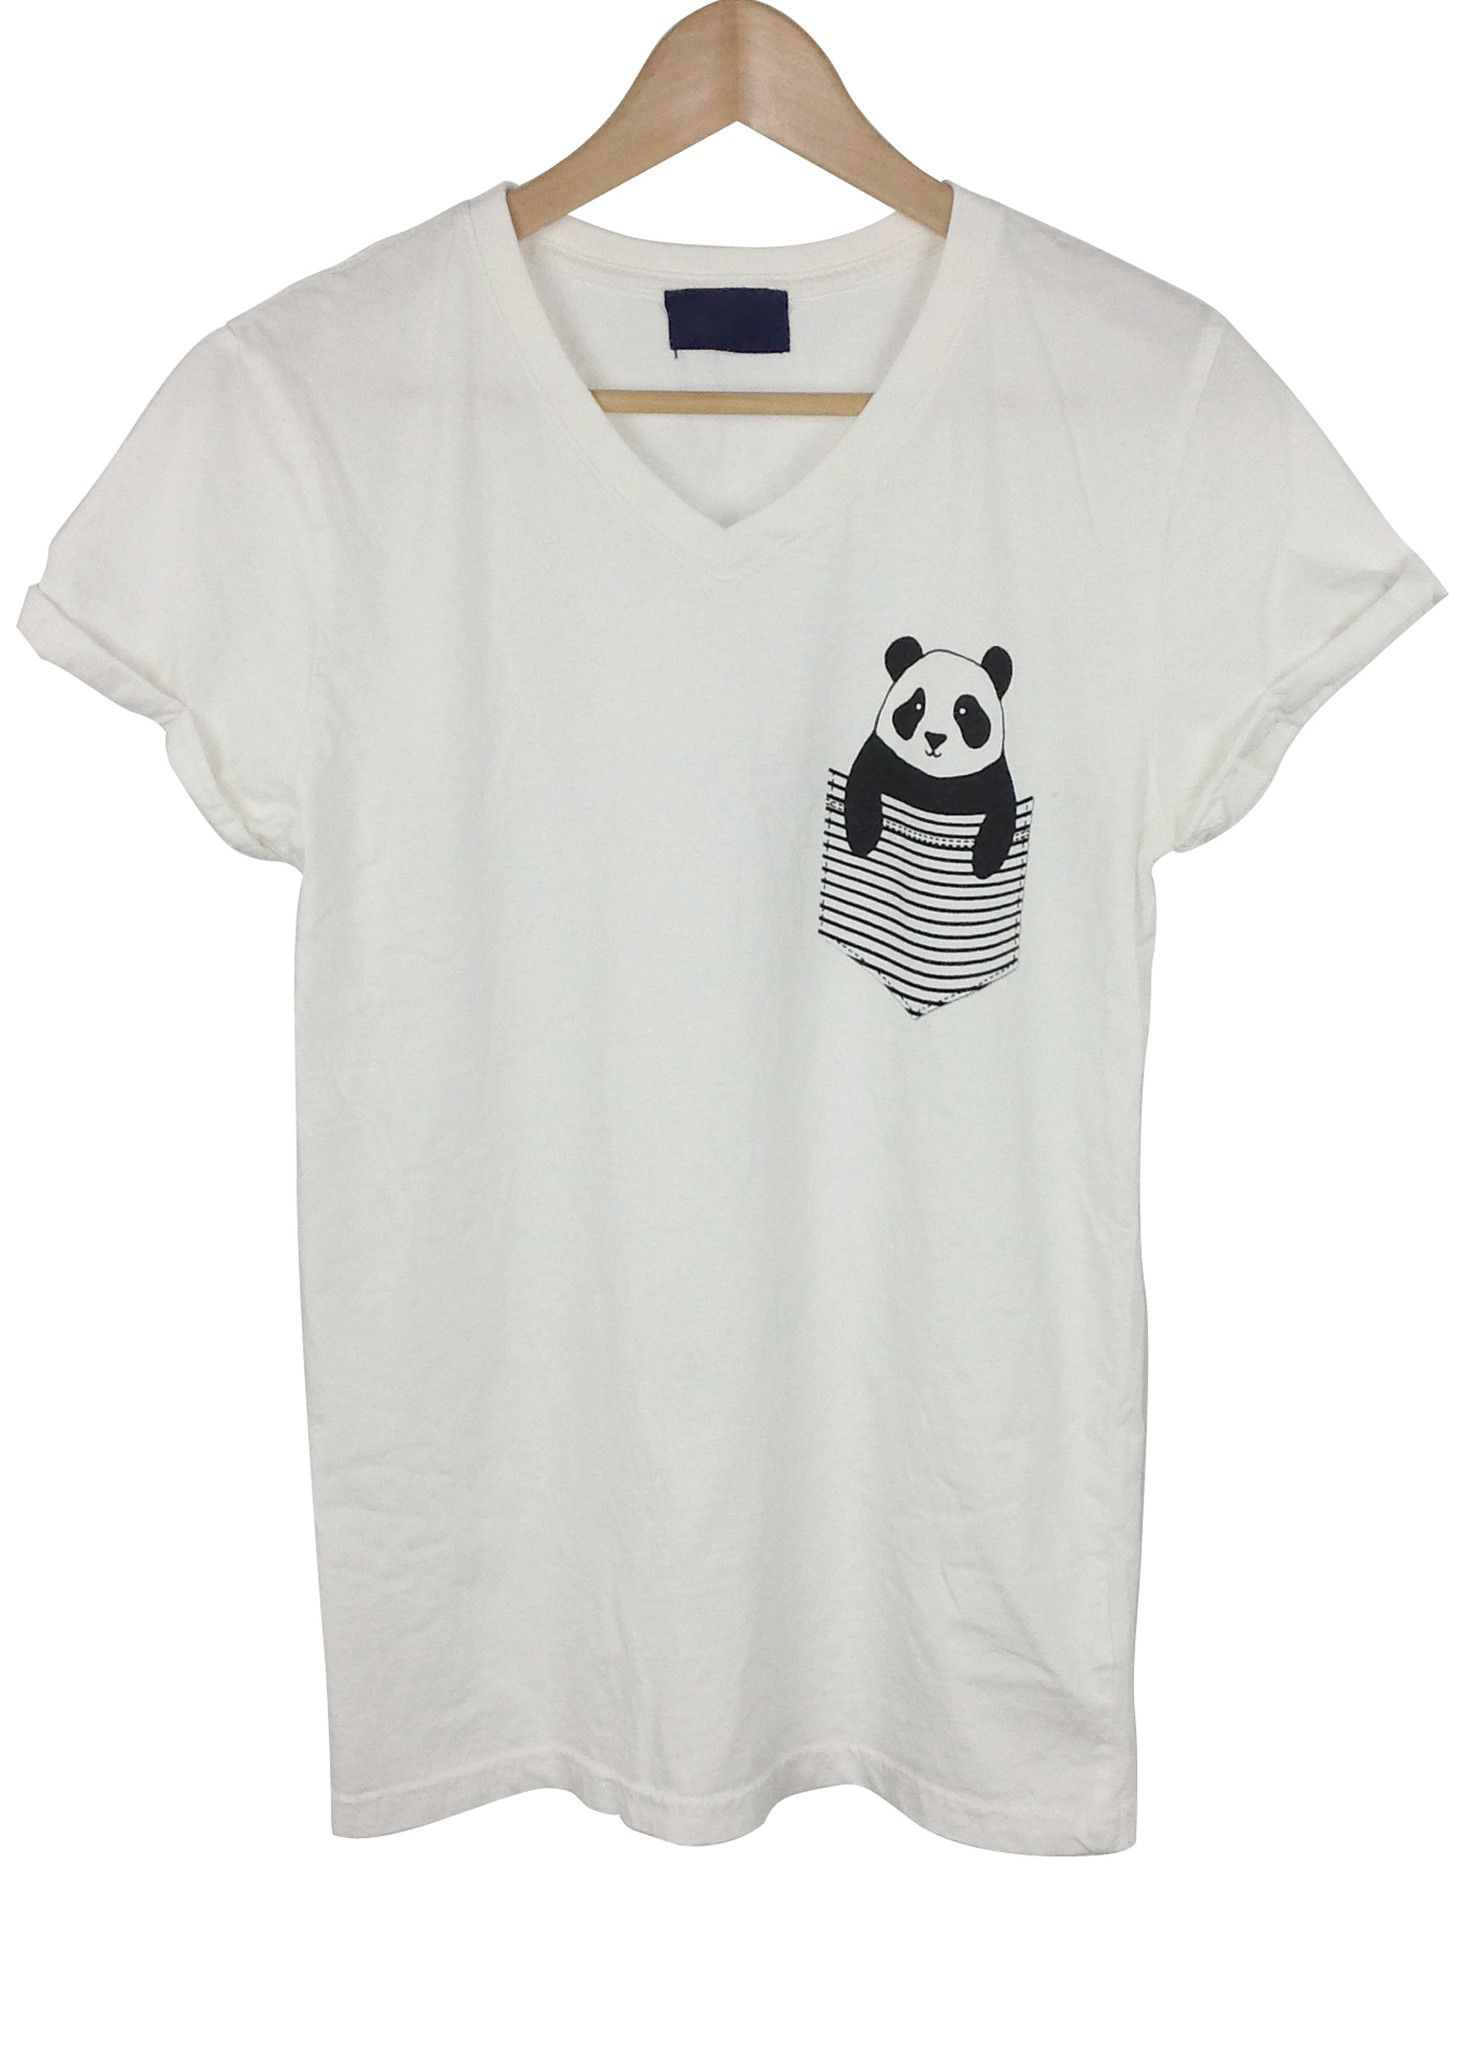 Design t shirt with pocket - Panda In The Pocket Graphic V Neck Short Sleeves T Shirt